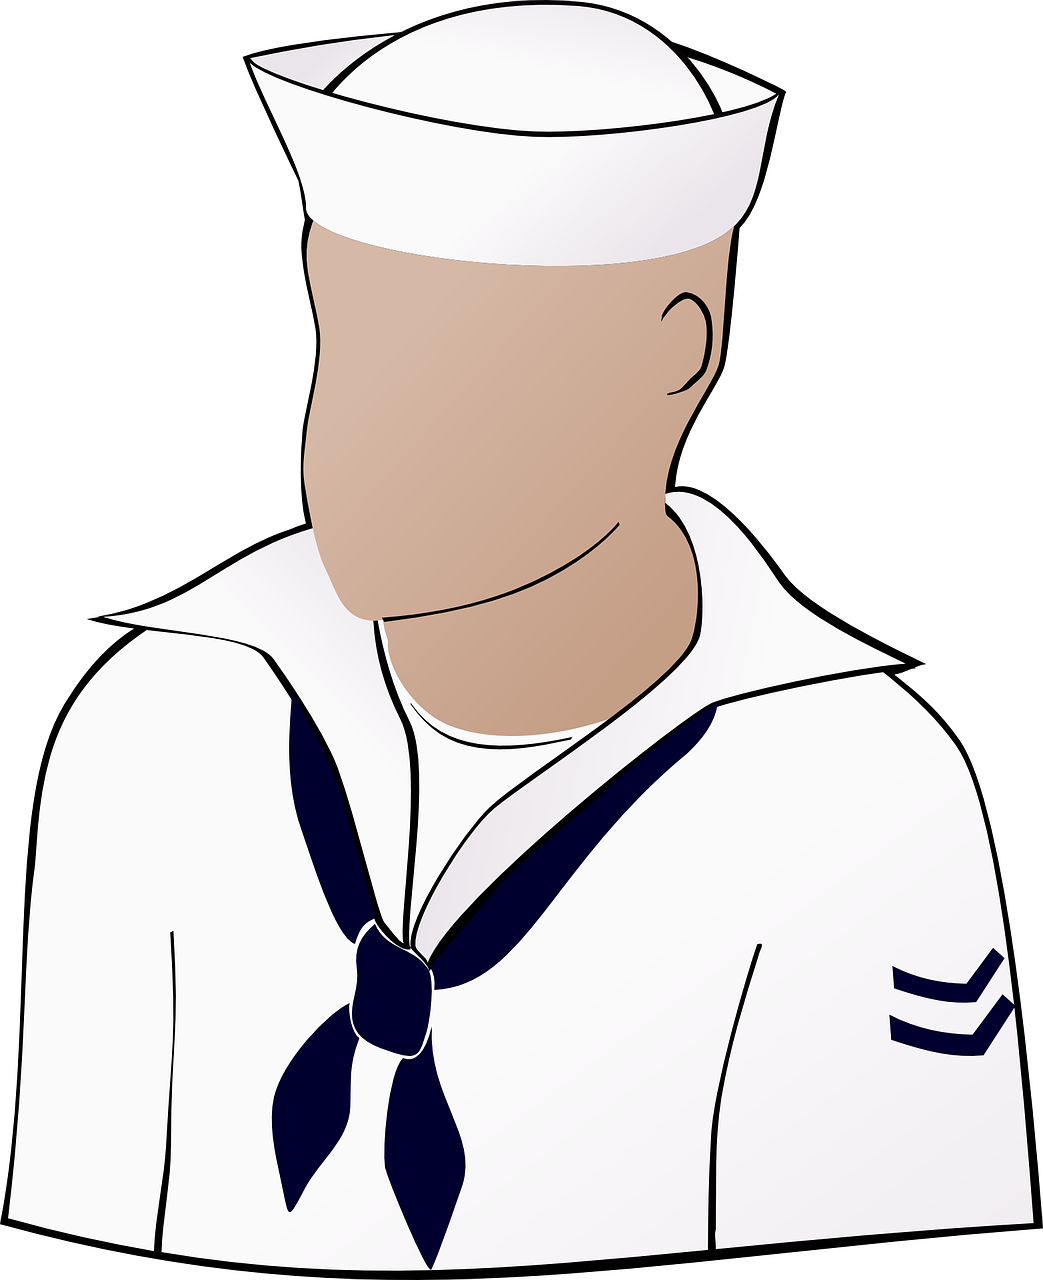 sailor person navy free photo